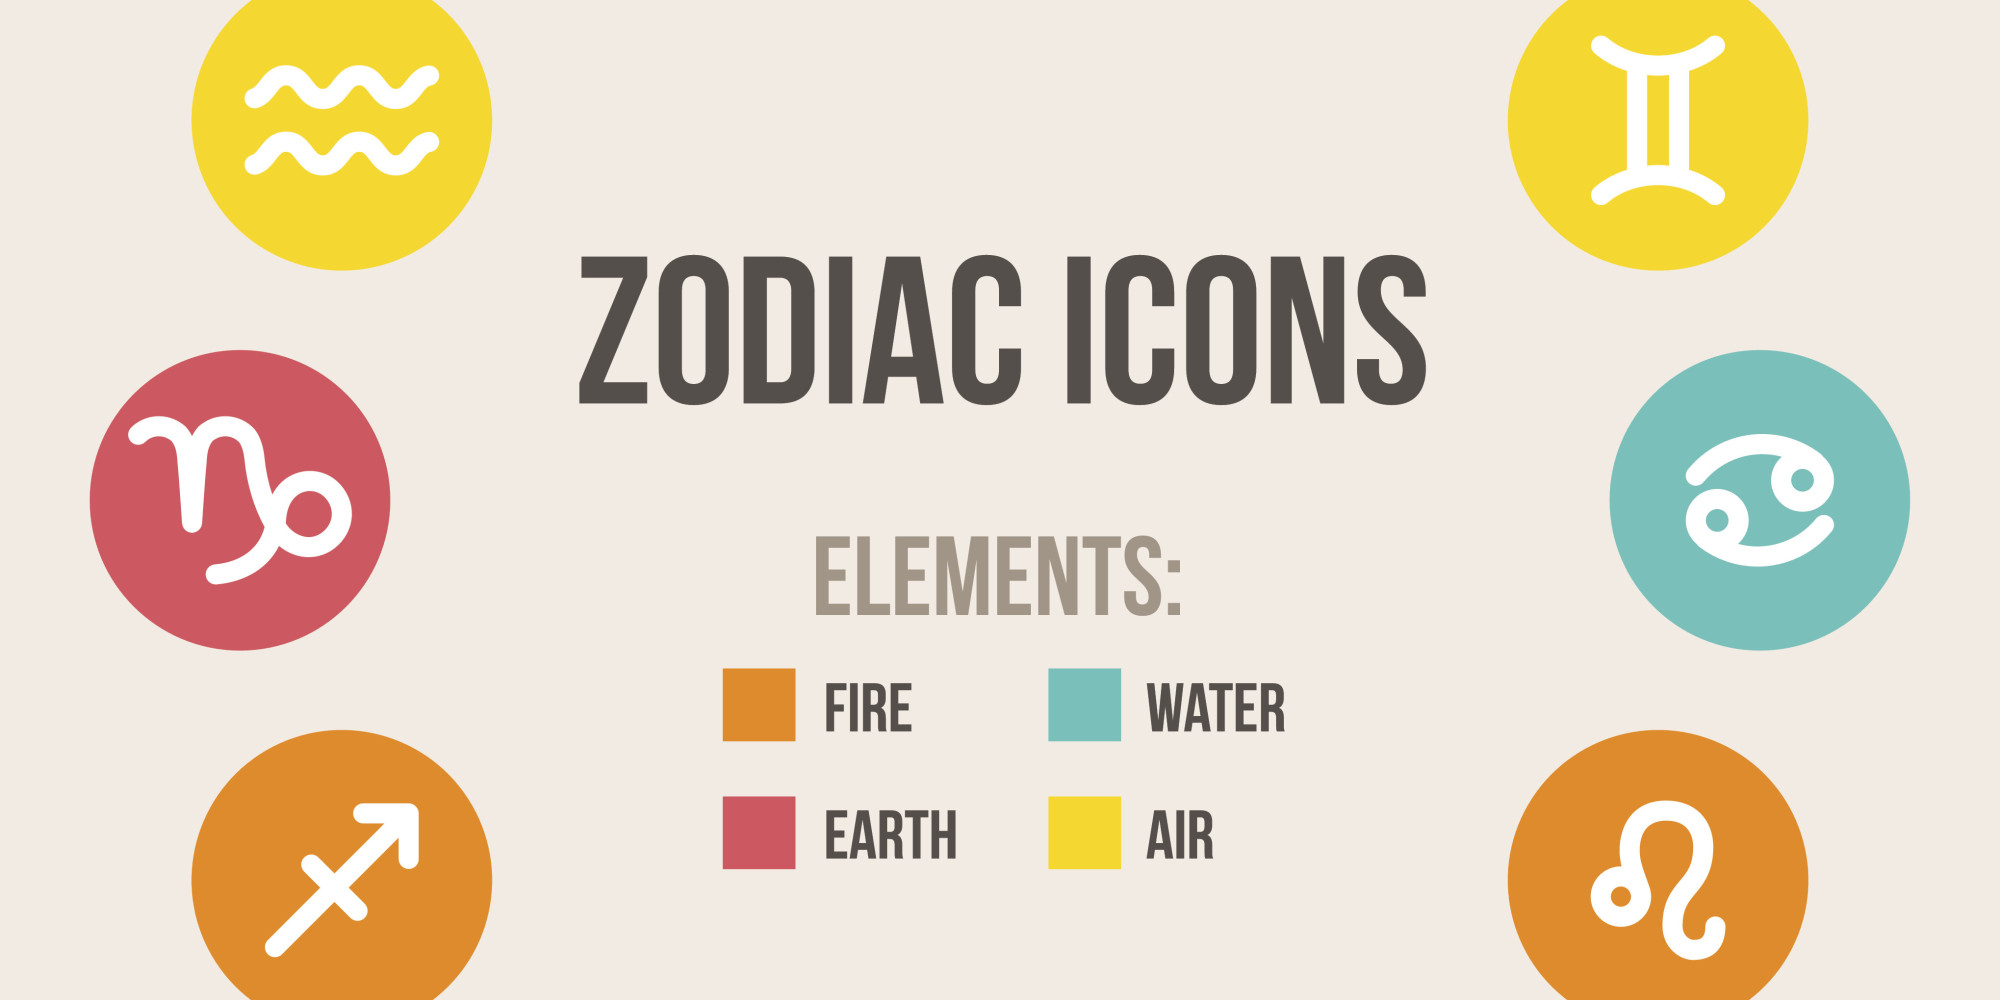 Are There Any Truths to Zodiac Signs? | HuffPost